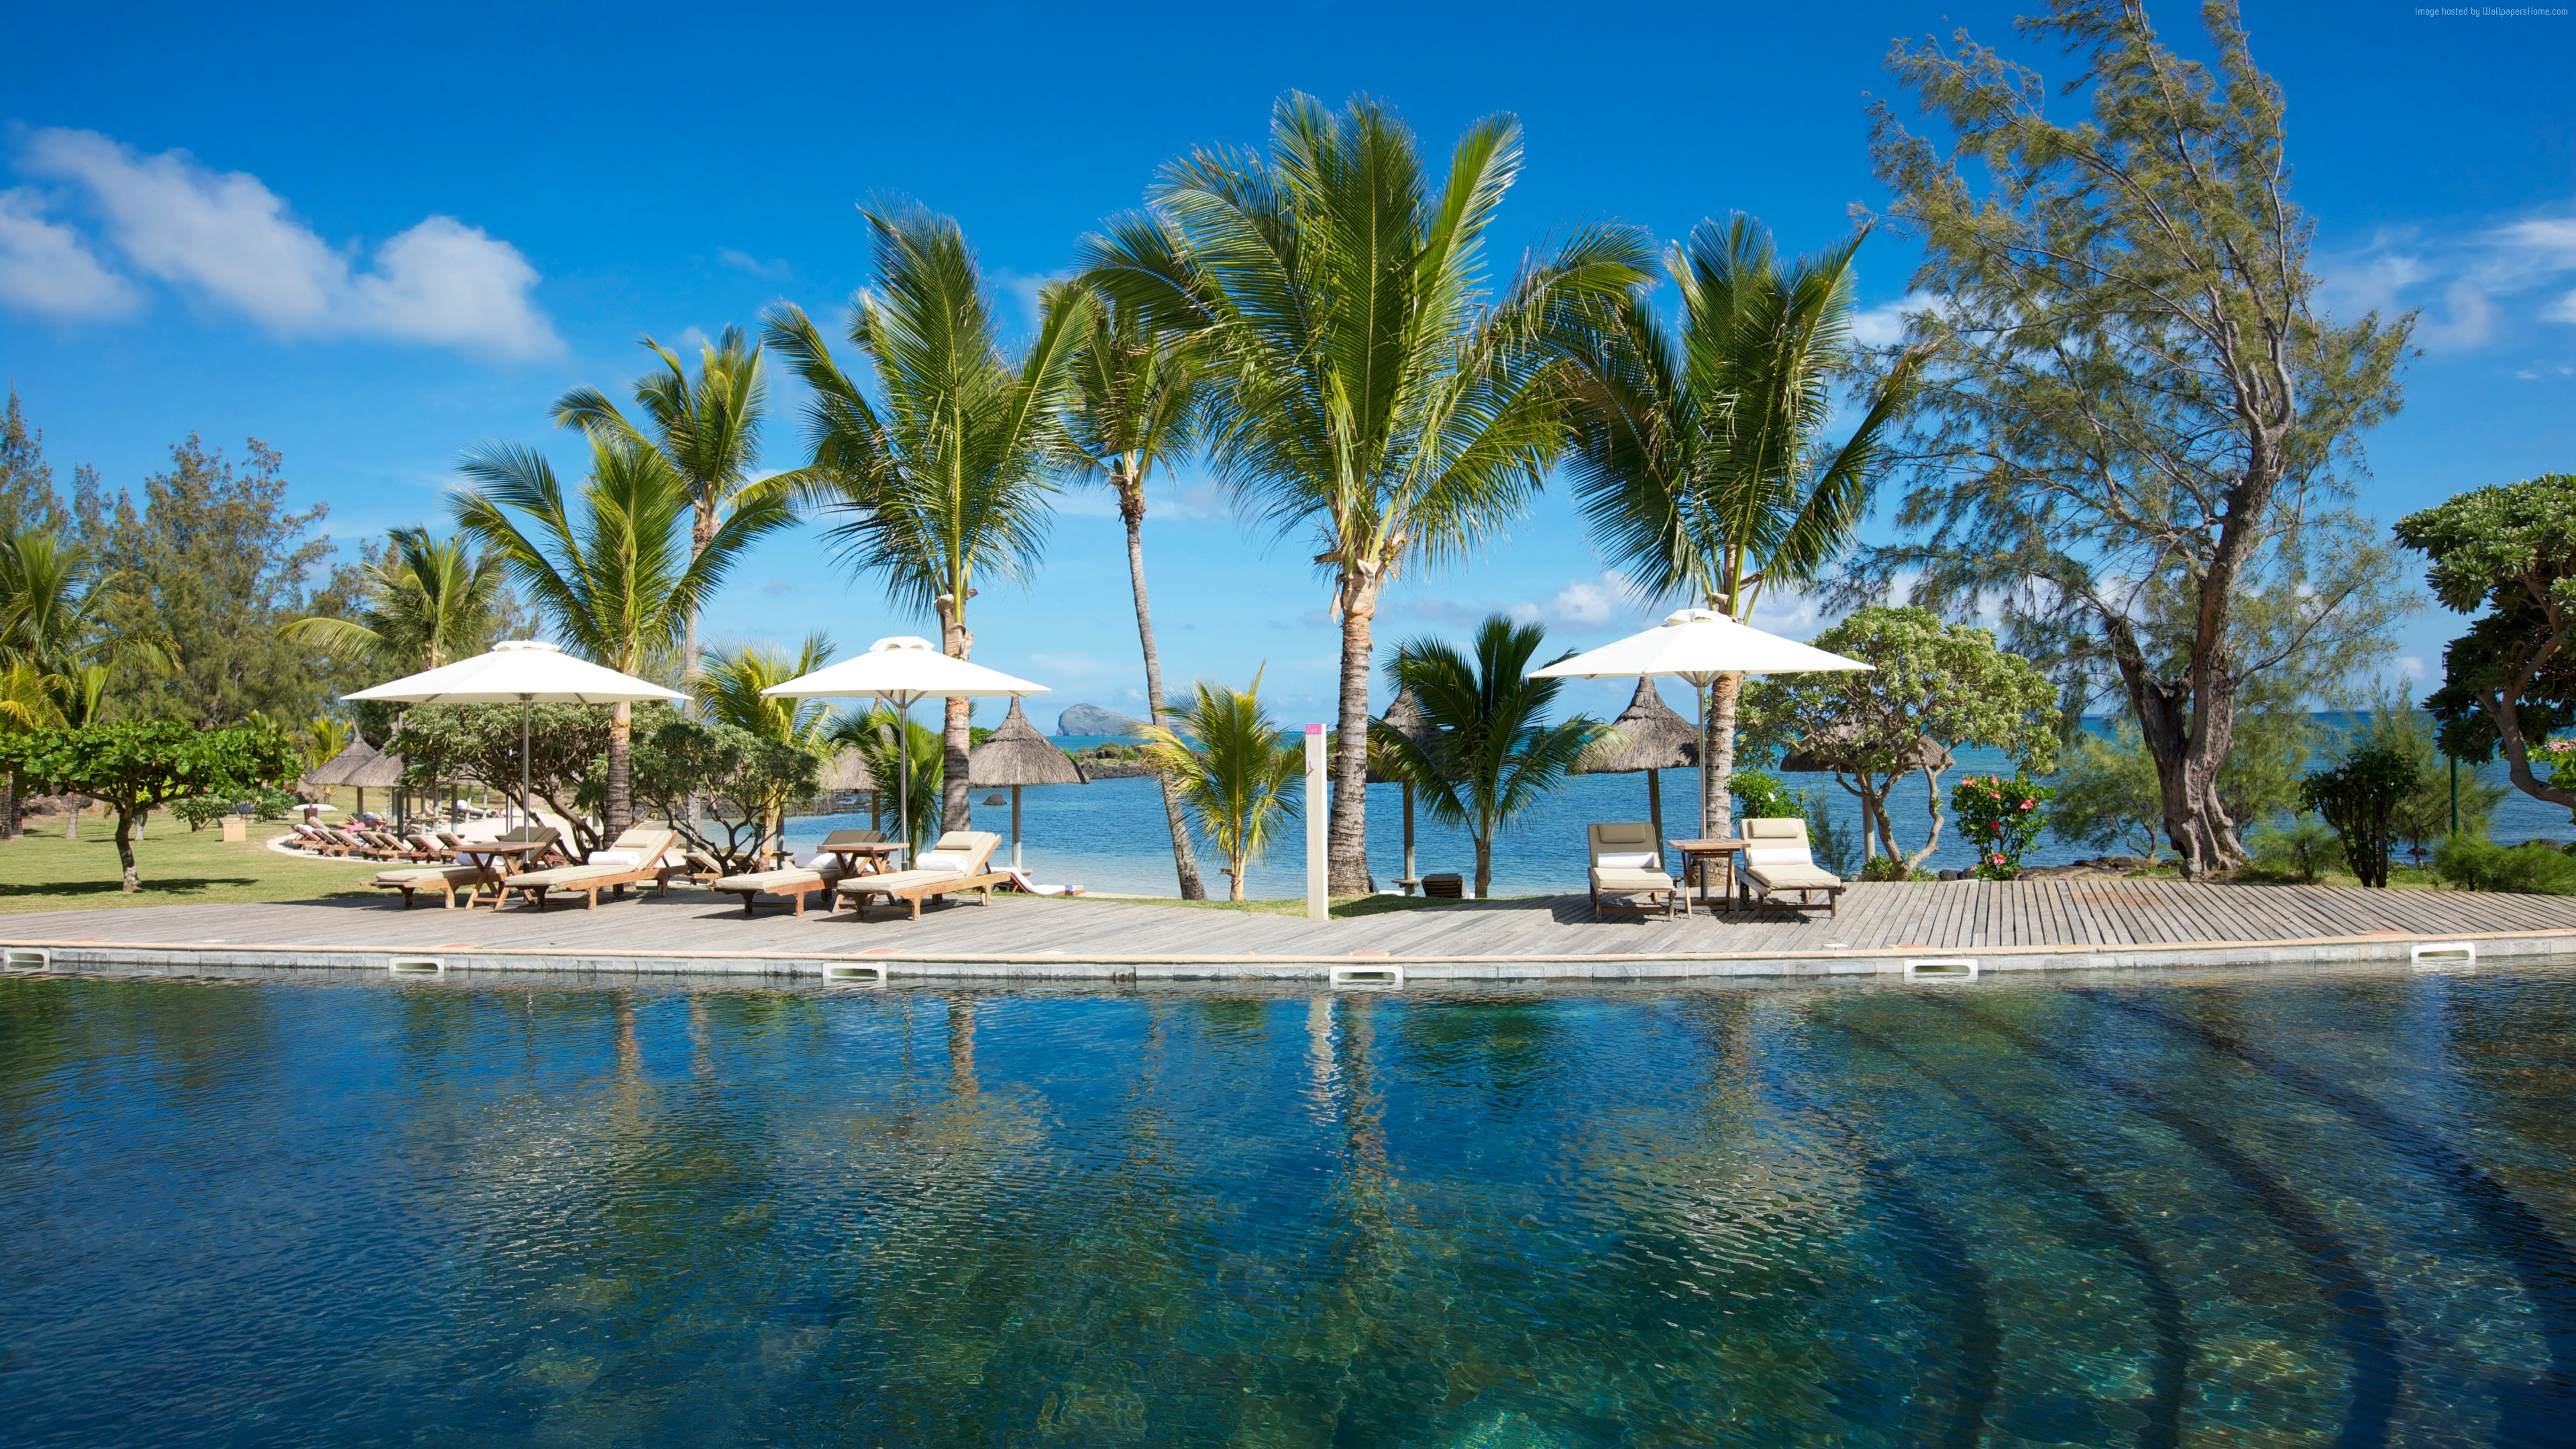 Wallpaper Grand Gaube, Mauritius, Hotel, pool, water, sunbed, palm, sky, blue, sea, ocean, travel, vacation, booking, World&